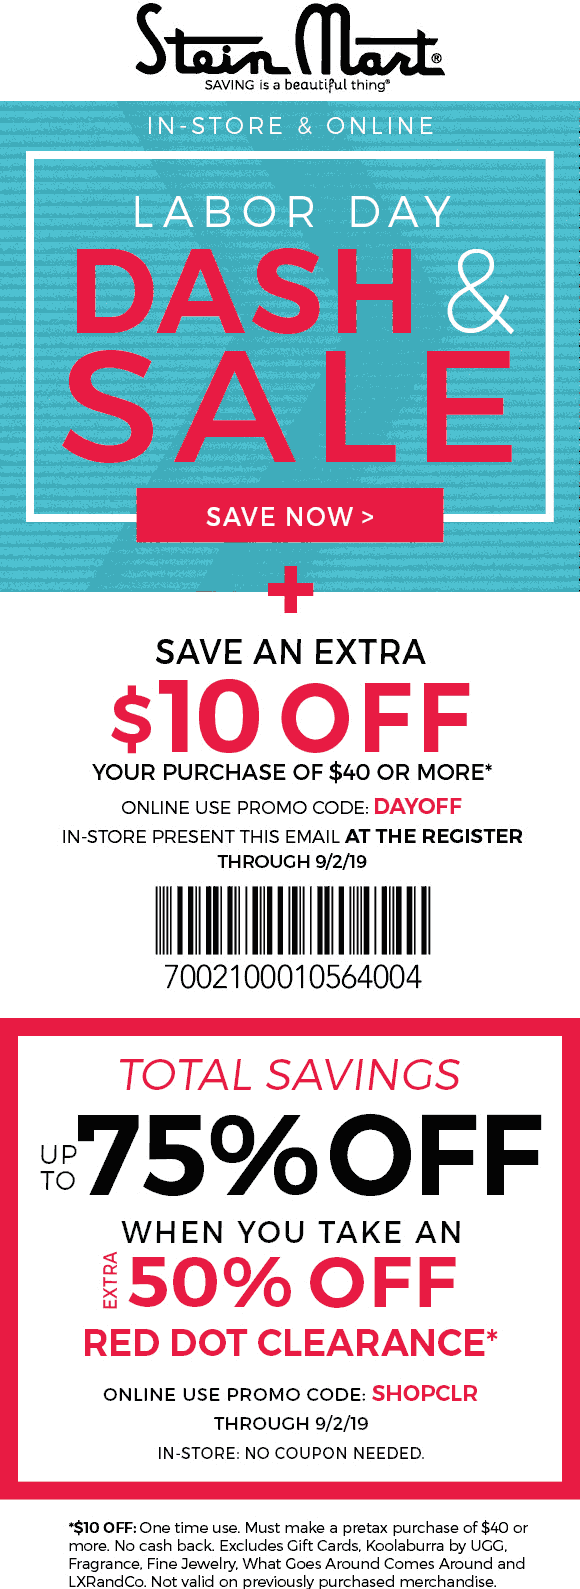 Stein Mart Coupon November 2019 $10 off $40 at Stein Mart, or online via promo code DAYOFF